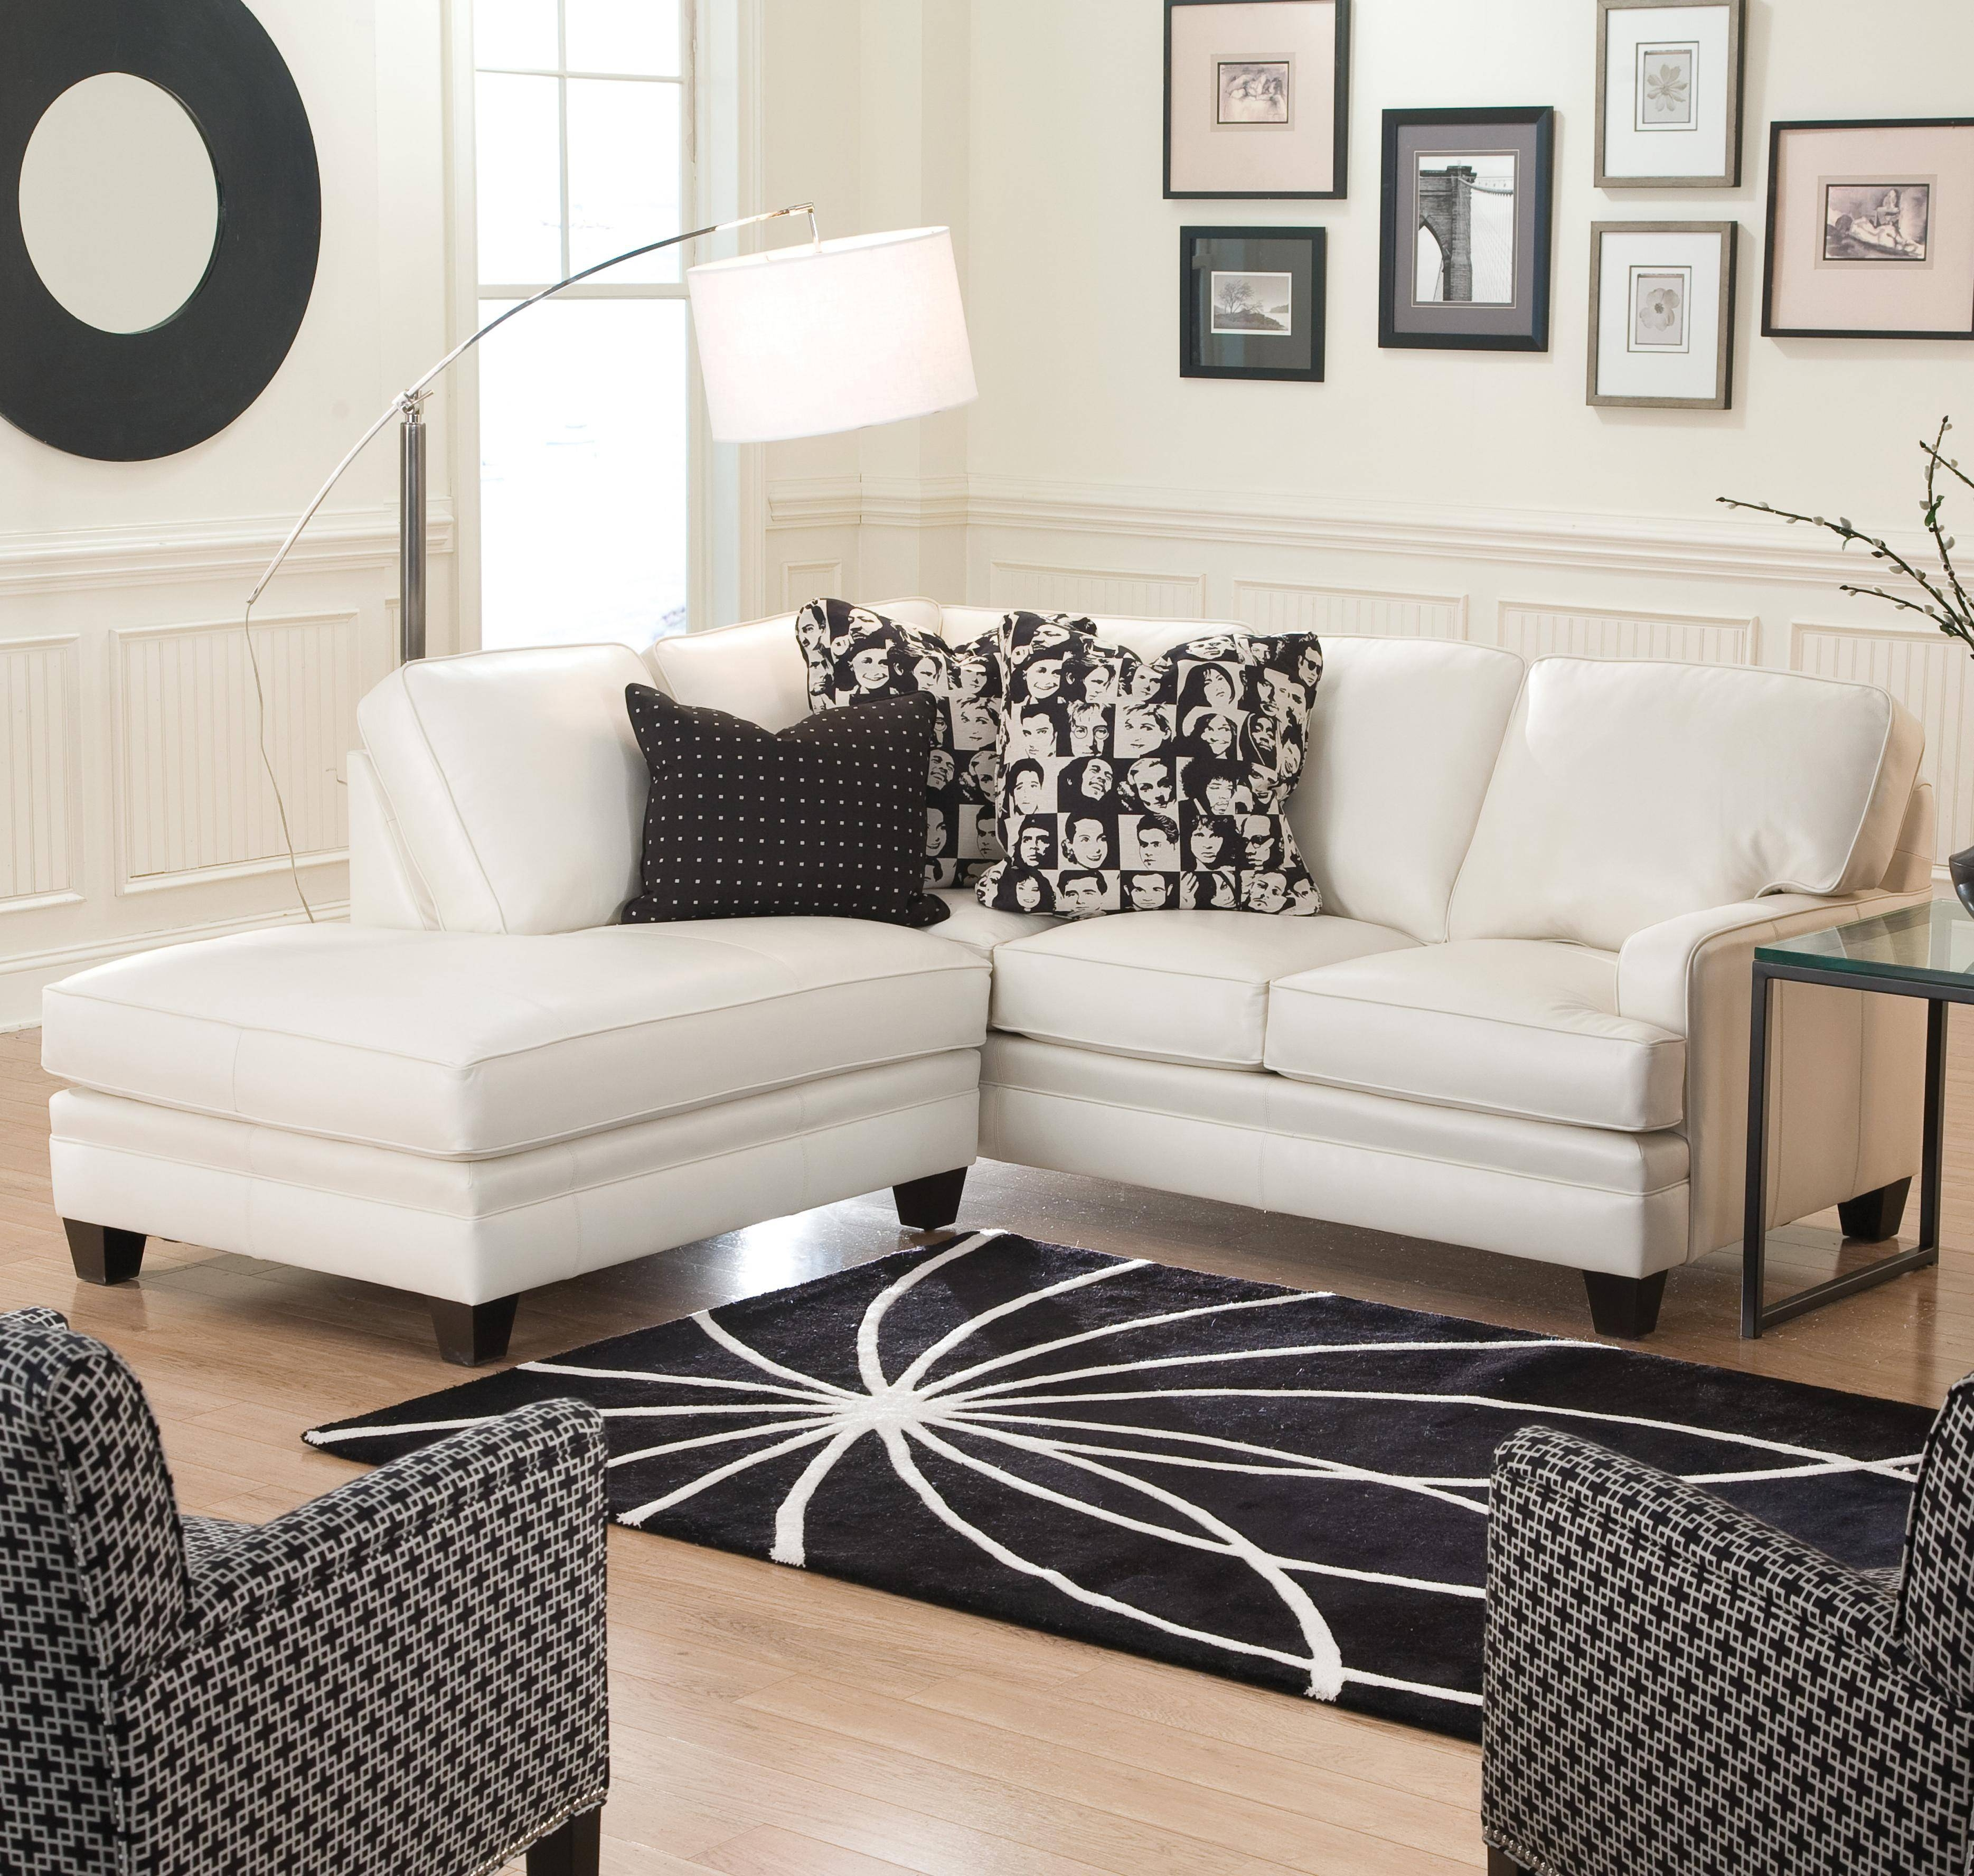 Chaise Sofa Sectional Small | Tehranmix Decoration inside Apartment Sectional Sofa With Chaise (Image 16 of 30)